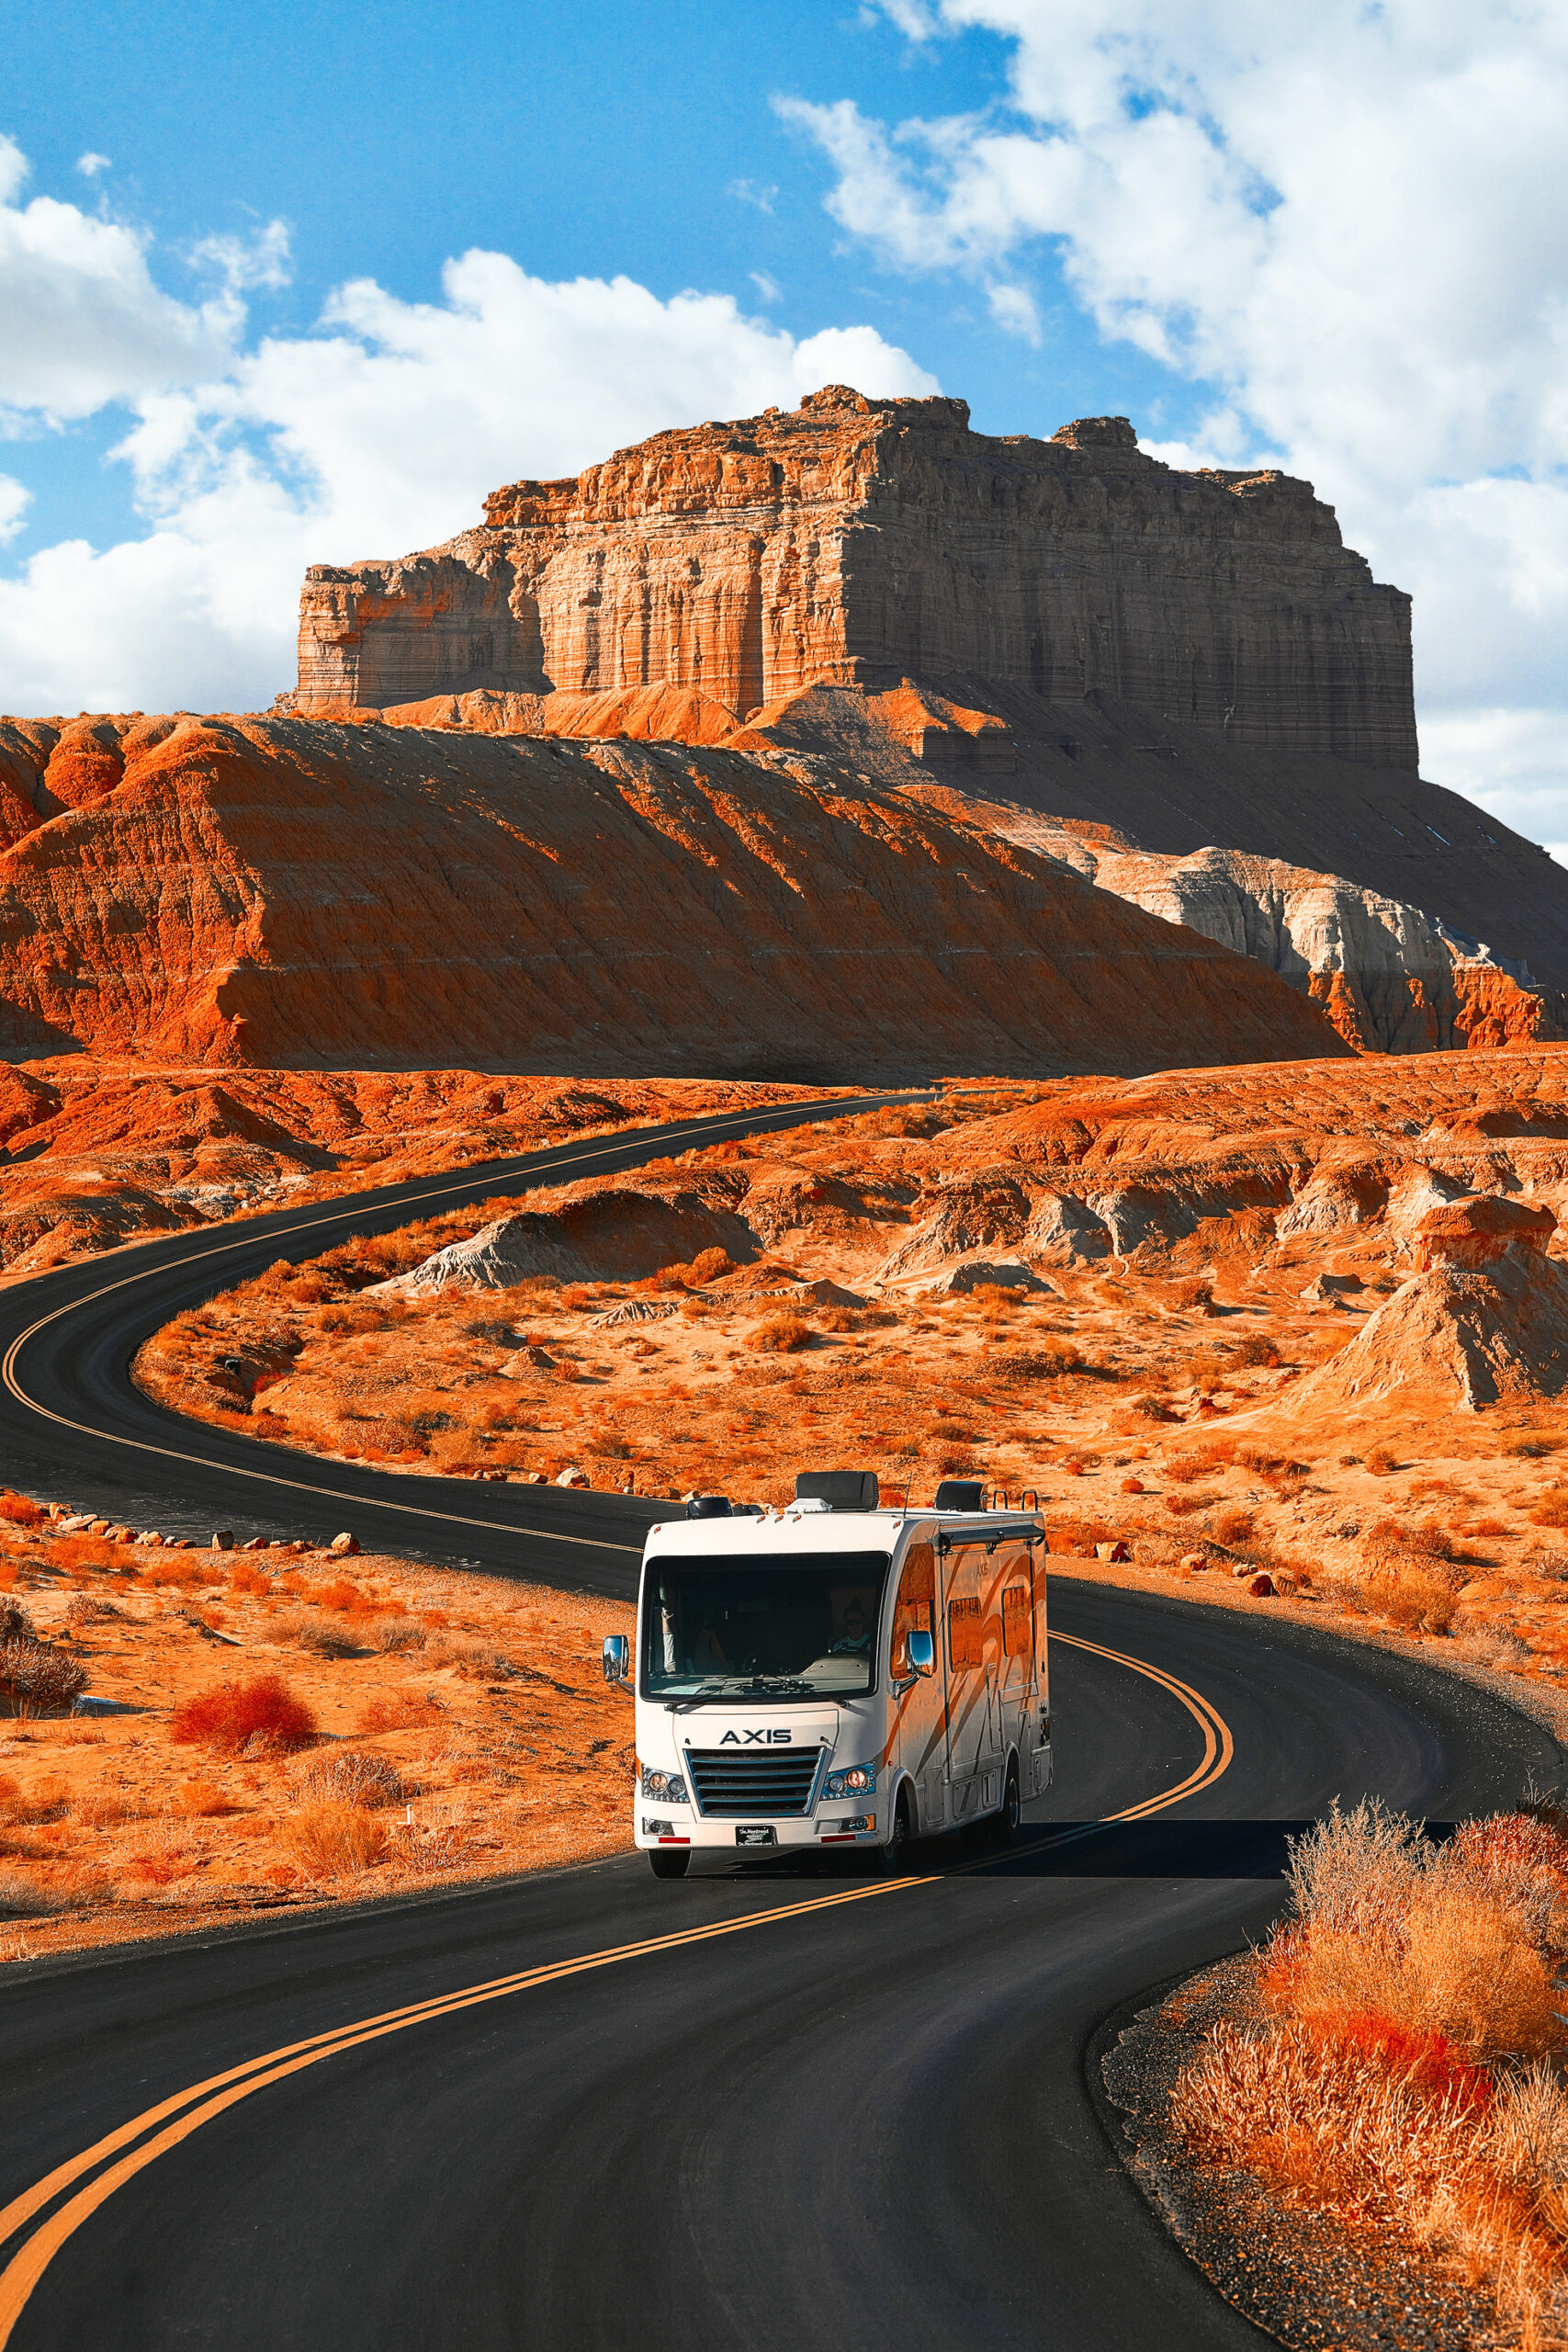 An RV driving through the red sandstone of the Southwest. In the background you can see a hill with a large red sandstone rock formation on top of it.